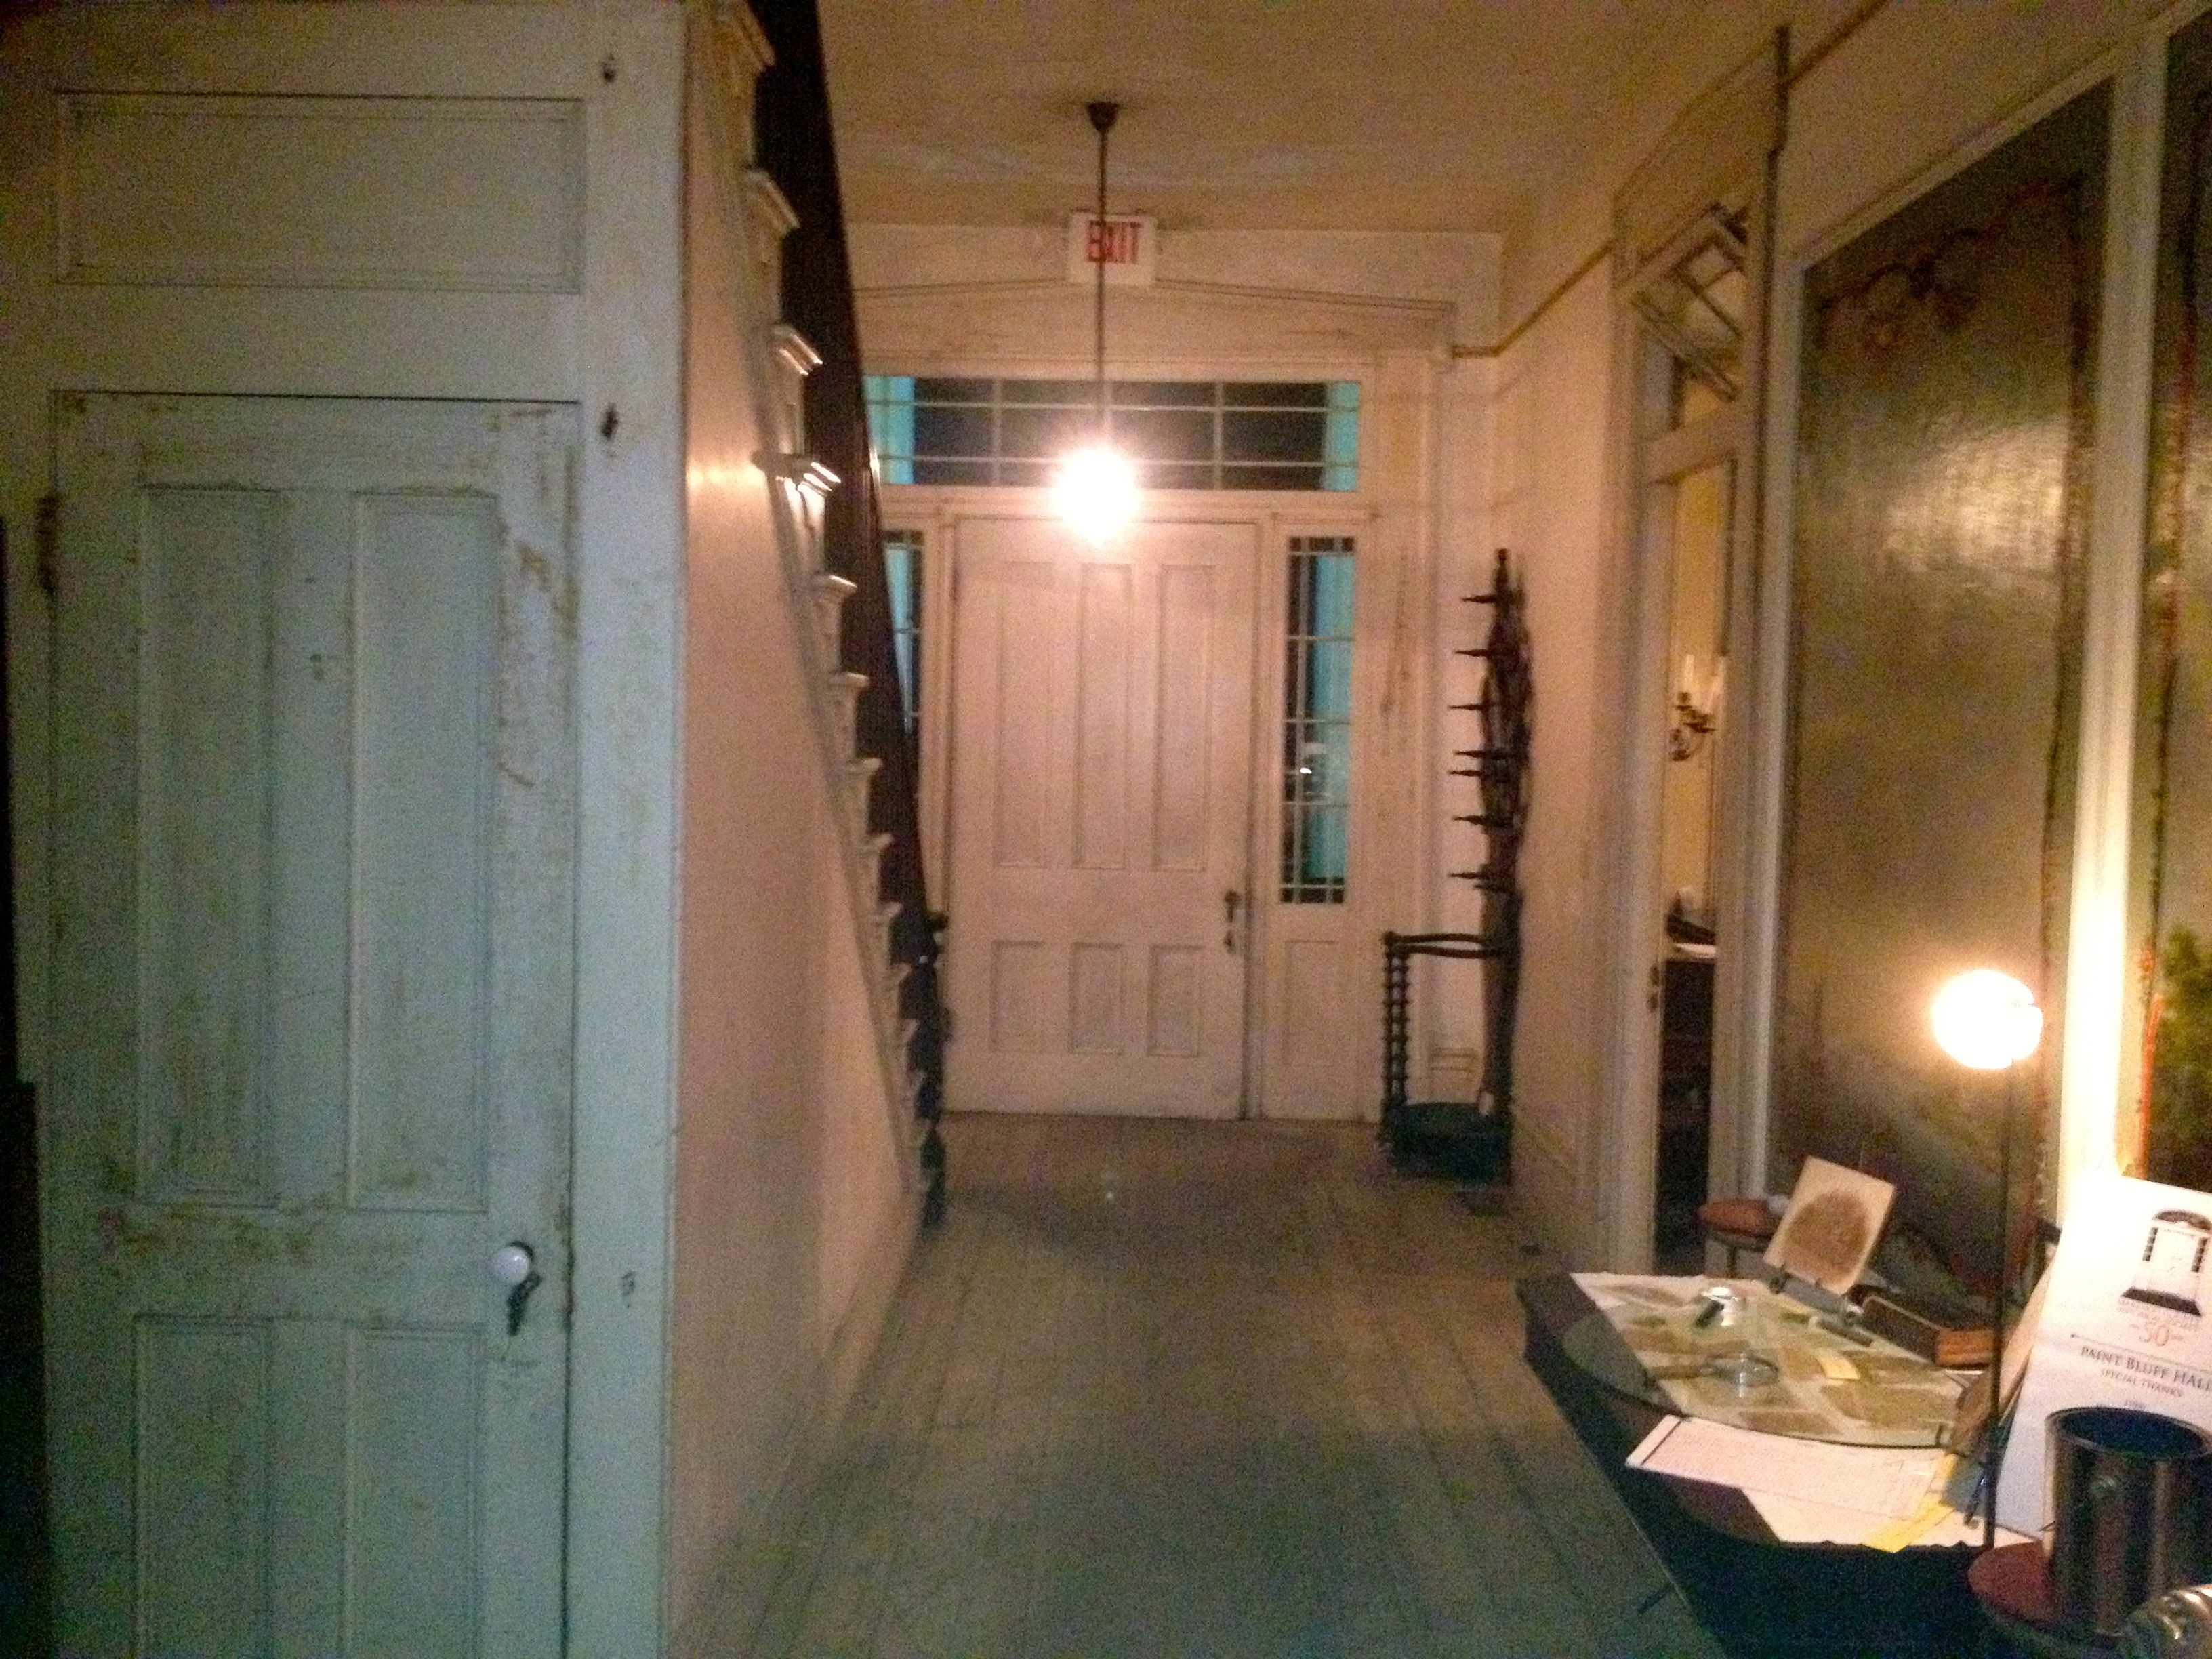 Hallway of Lyon Hall  Demopolis  AL    Demopolis Through My Eyes     Demopolis  AL